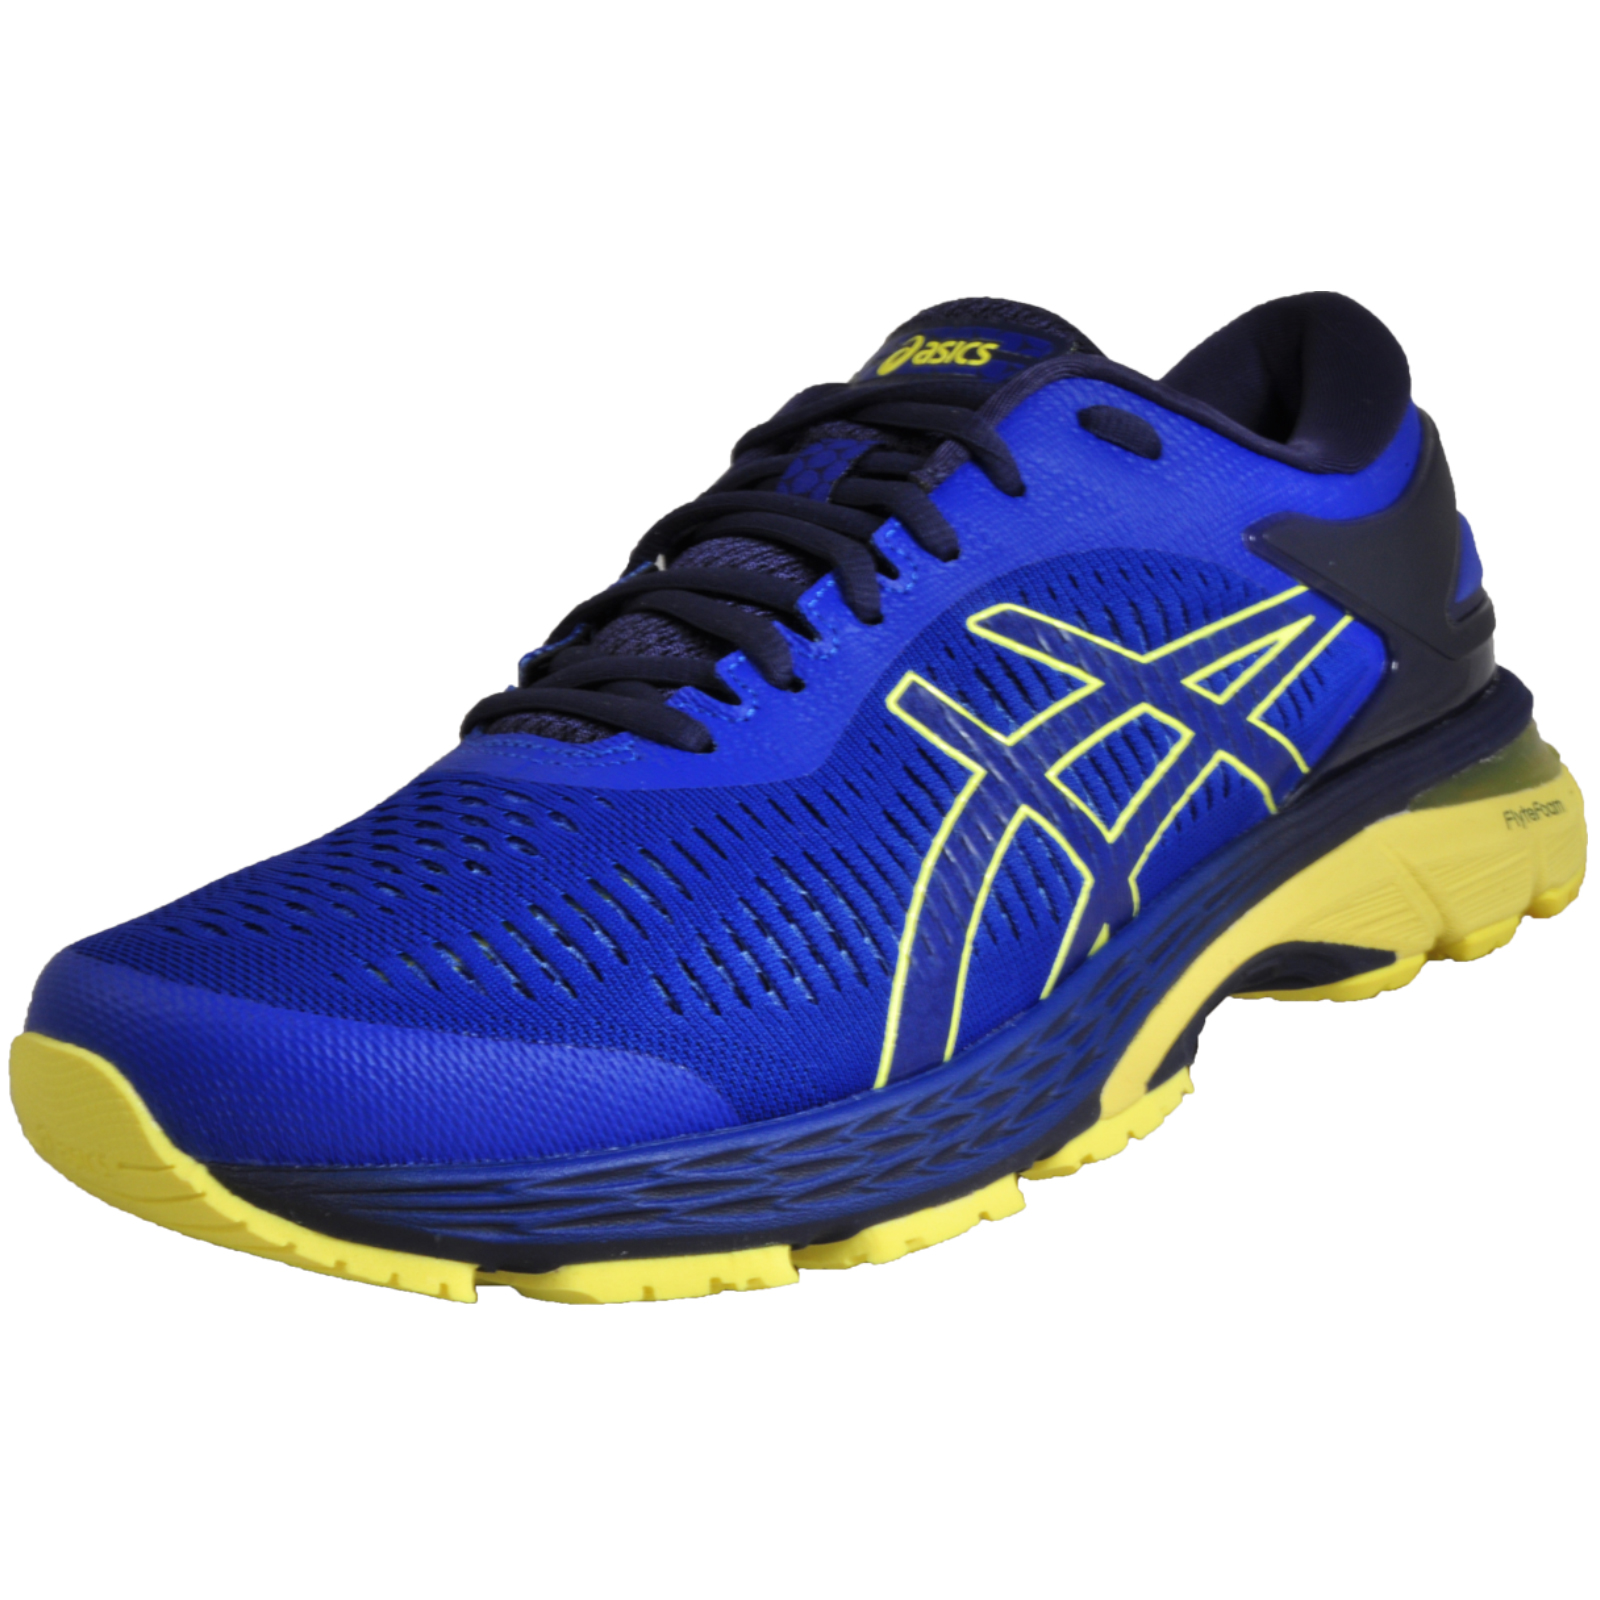 wide selection of colors details for discount up to 60% Details about Asics Gel Kayano 25 Men's Premium Elite Running Shoes Blue  New 2019